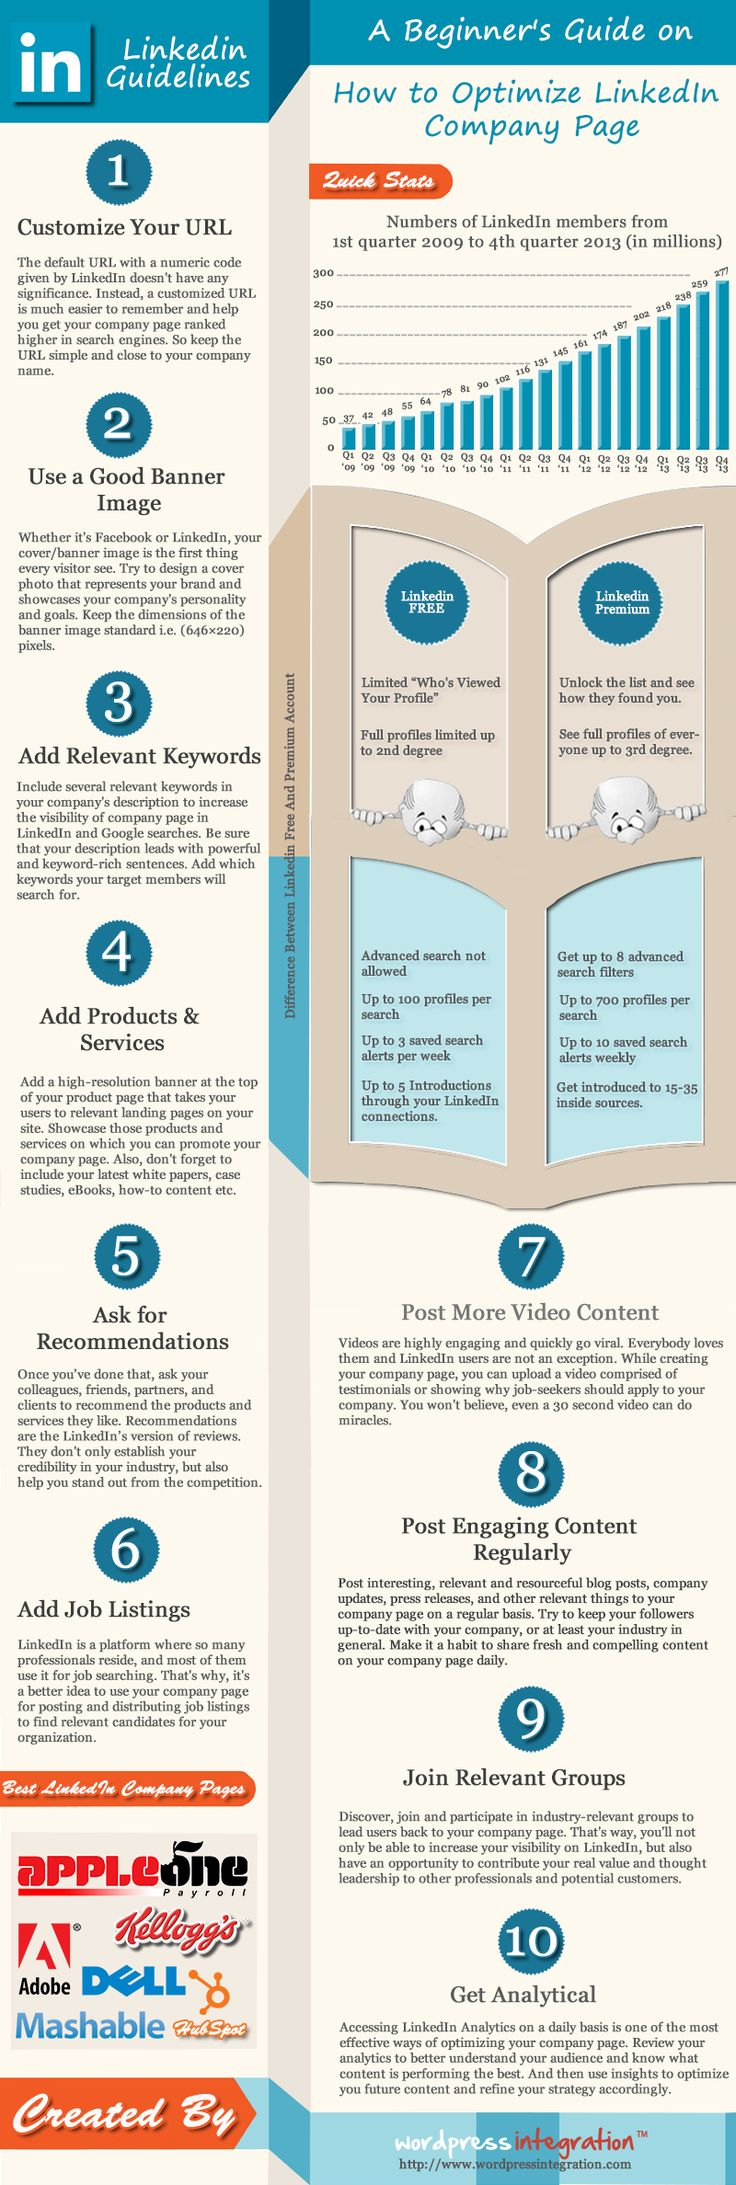 SOCIAL MEDIA -         LINKED'IN - A Beginner's Guide on How to Optimize LinkedIn Company Page.